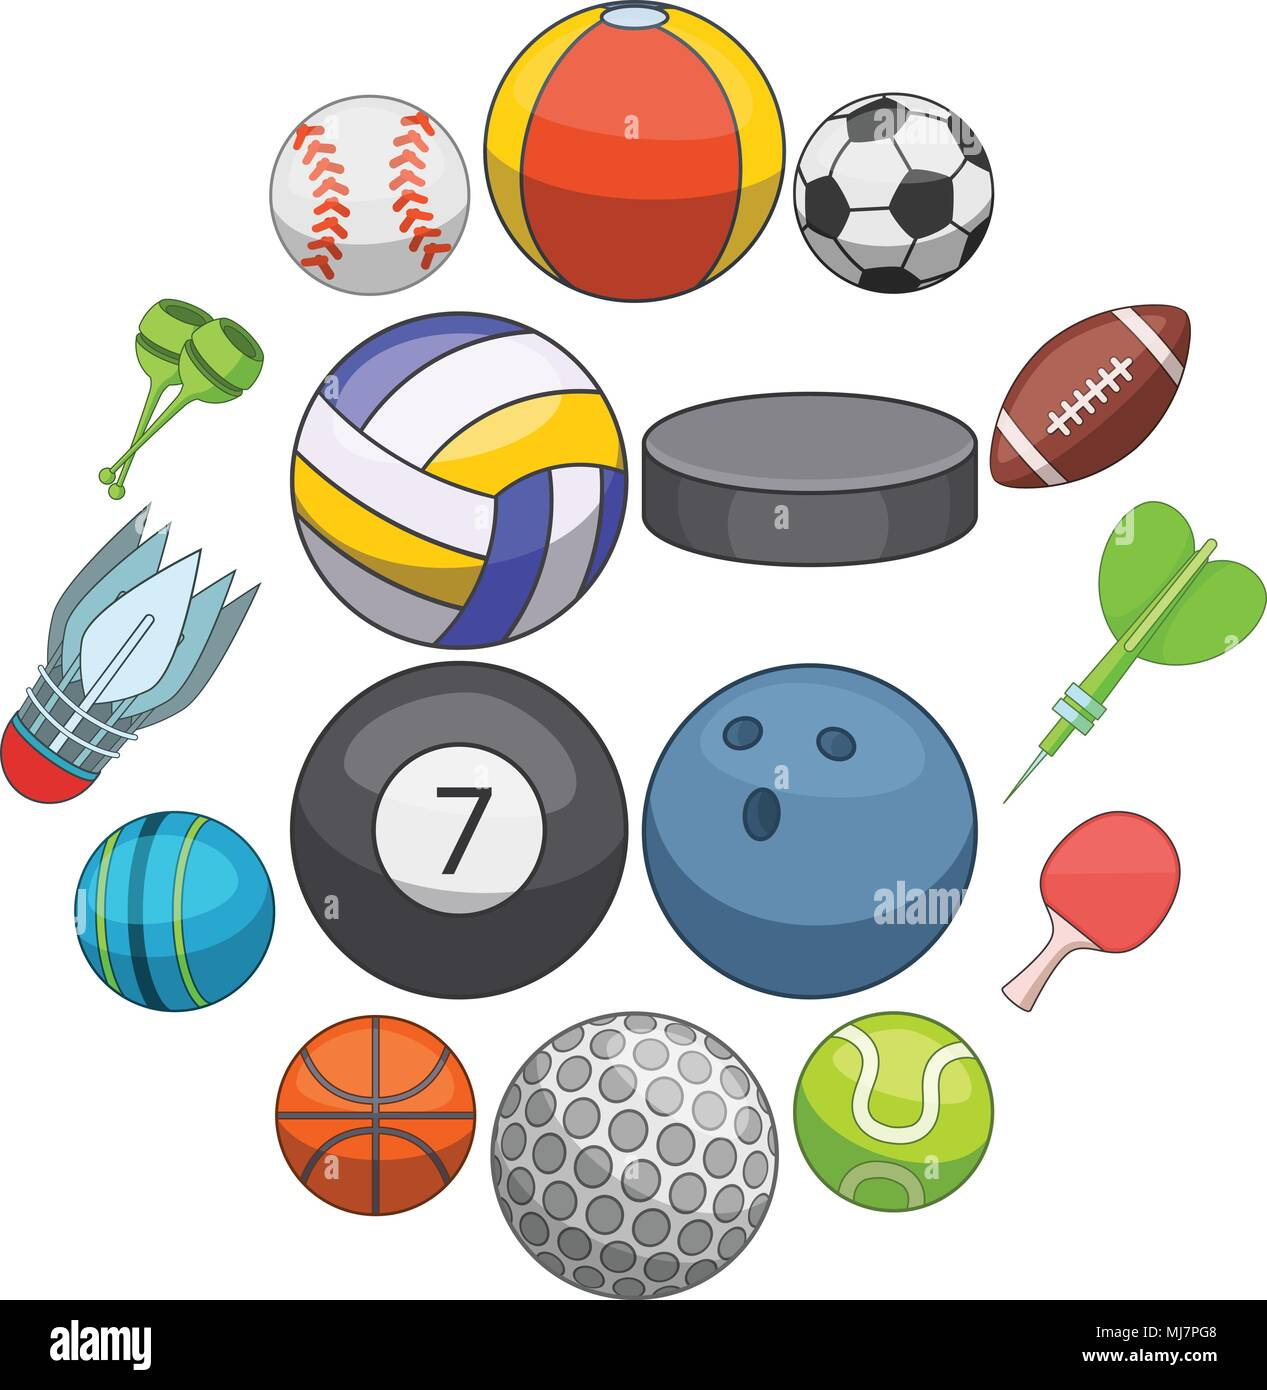 Sport Balls Icons Set Cartoon Style Stock Vector Image Art Alamy